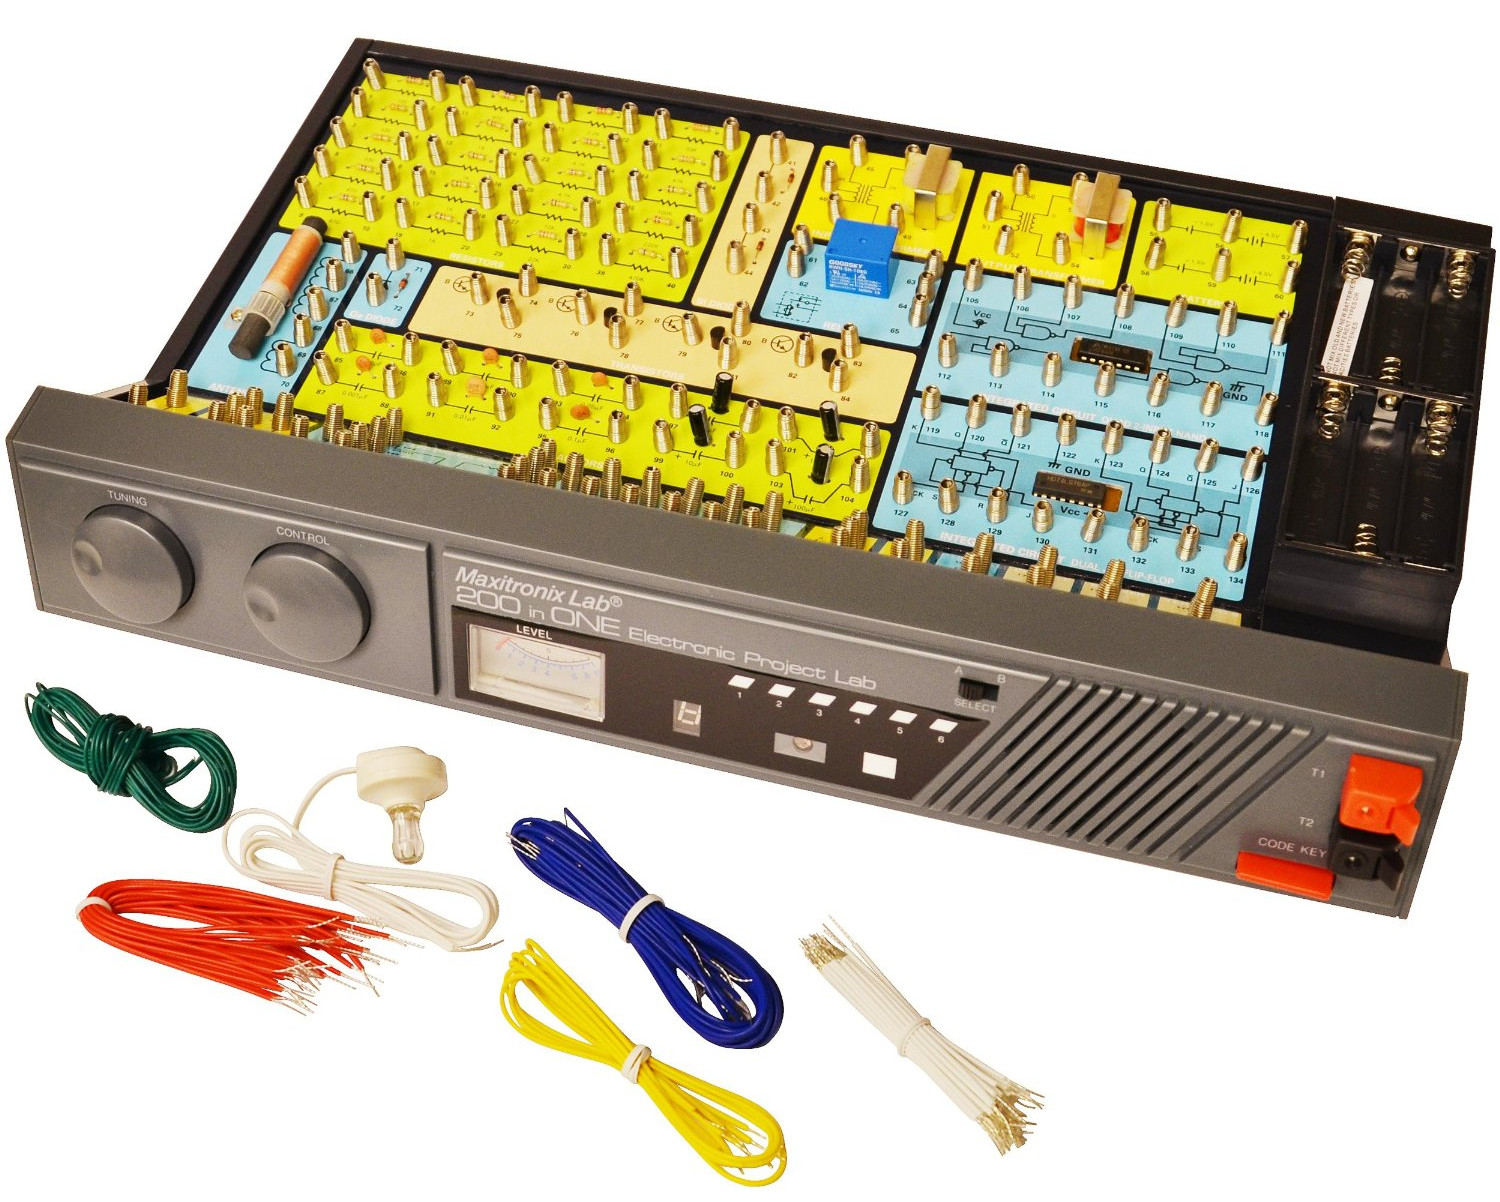 A modern rebuild of the Radio Shack 150-in-One electronics kit ...